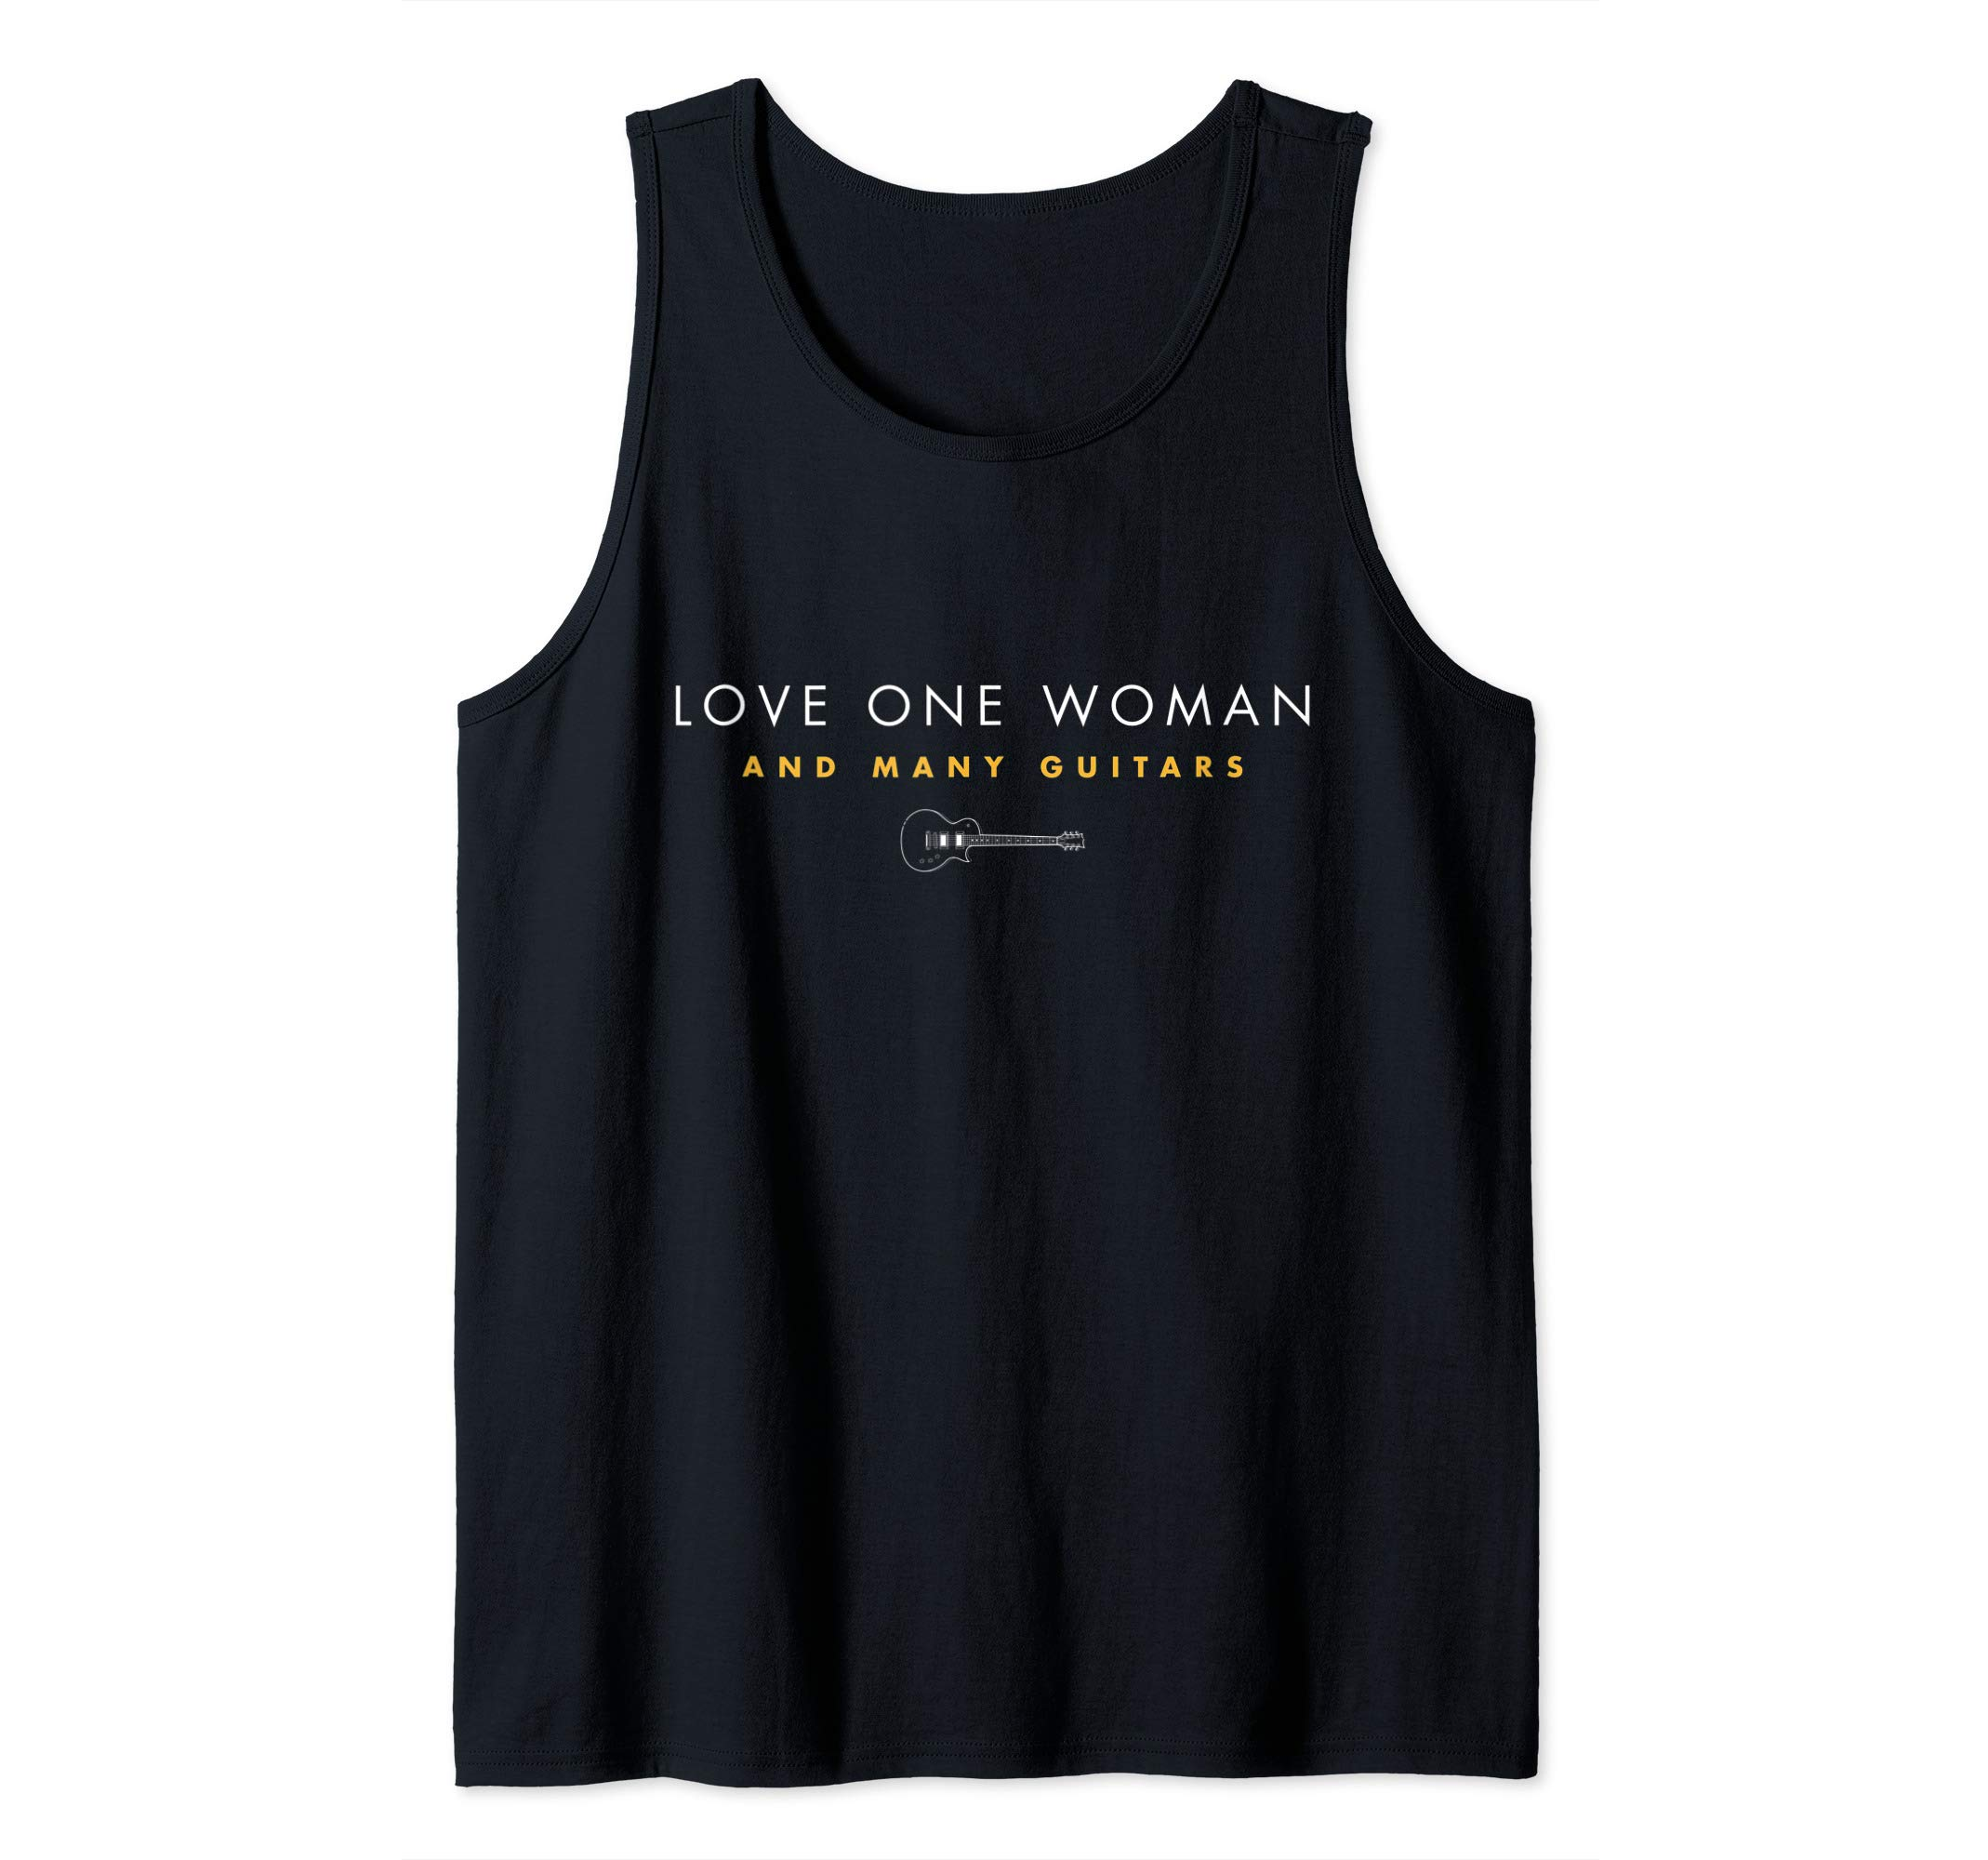 Guitar - Love One Woman and Many Guitars Tank Top by Guitar Shirt